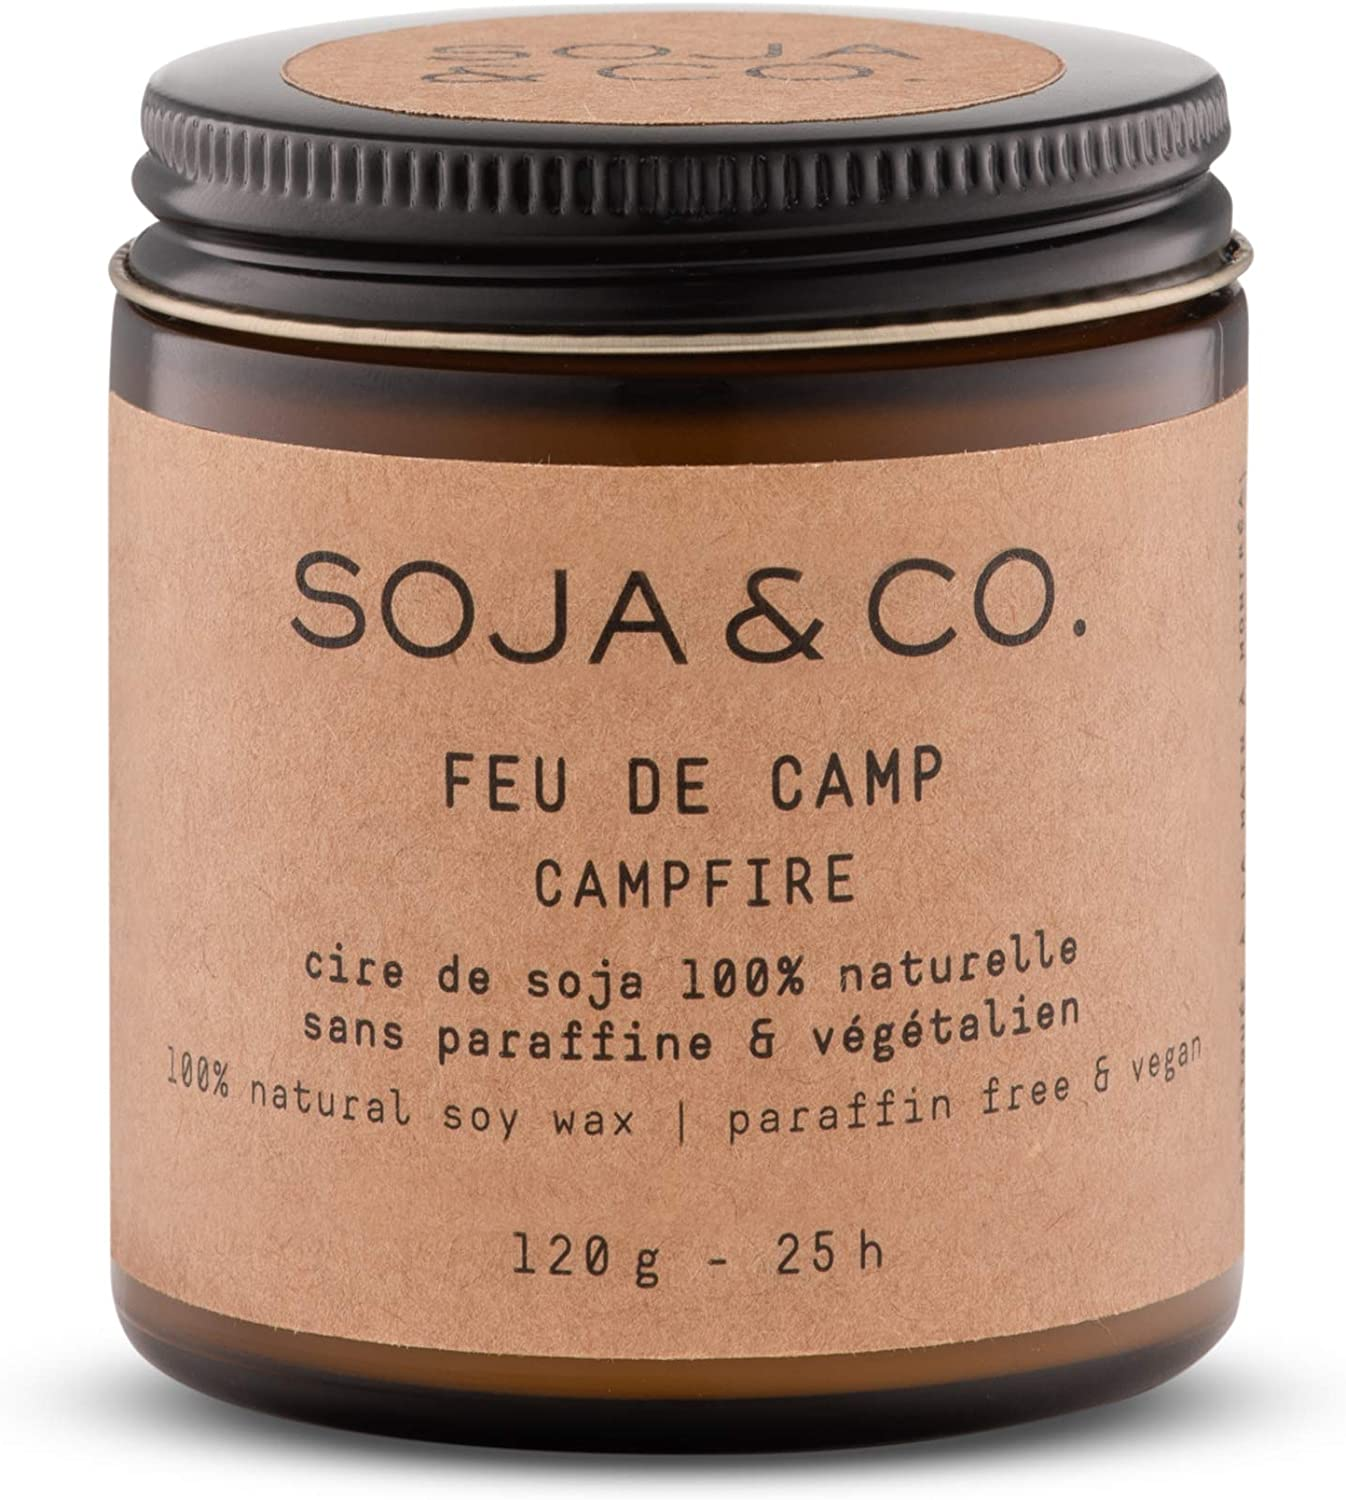 Burns 25 Hours,Feu de Camp//Campfire Aroma Scented Candles for Home 4oz SOJA/&CO Long Burning Glass Jar Soy Fragrance Candles Aromatic Soy Wax Candle in Glass Jar